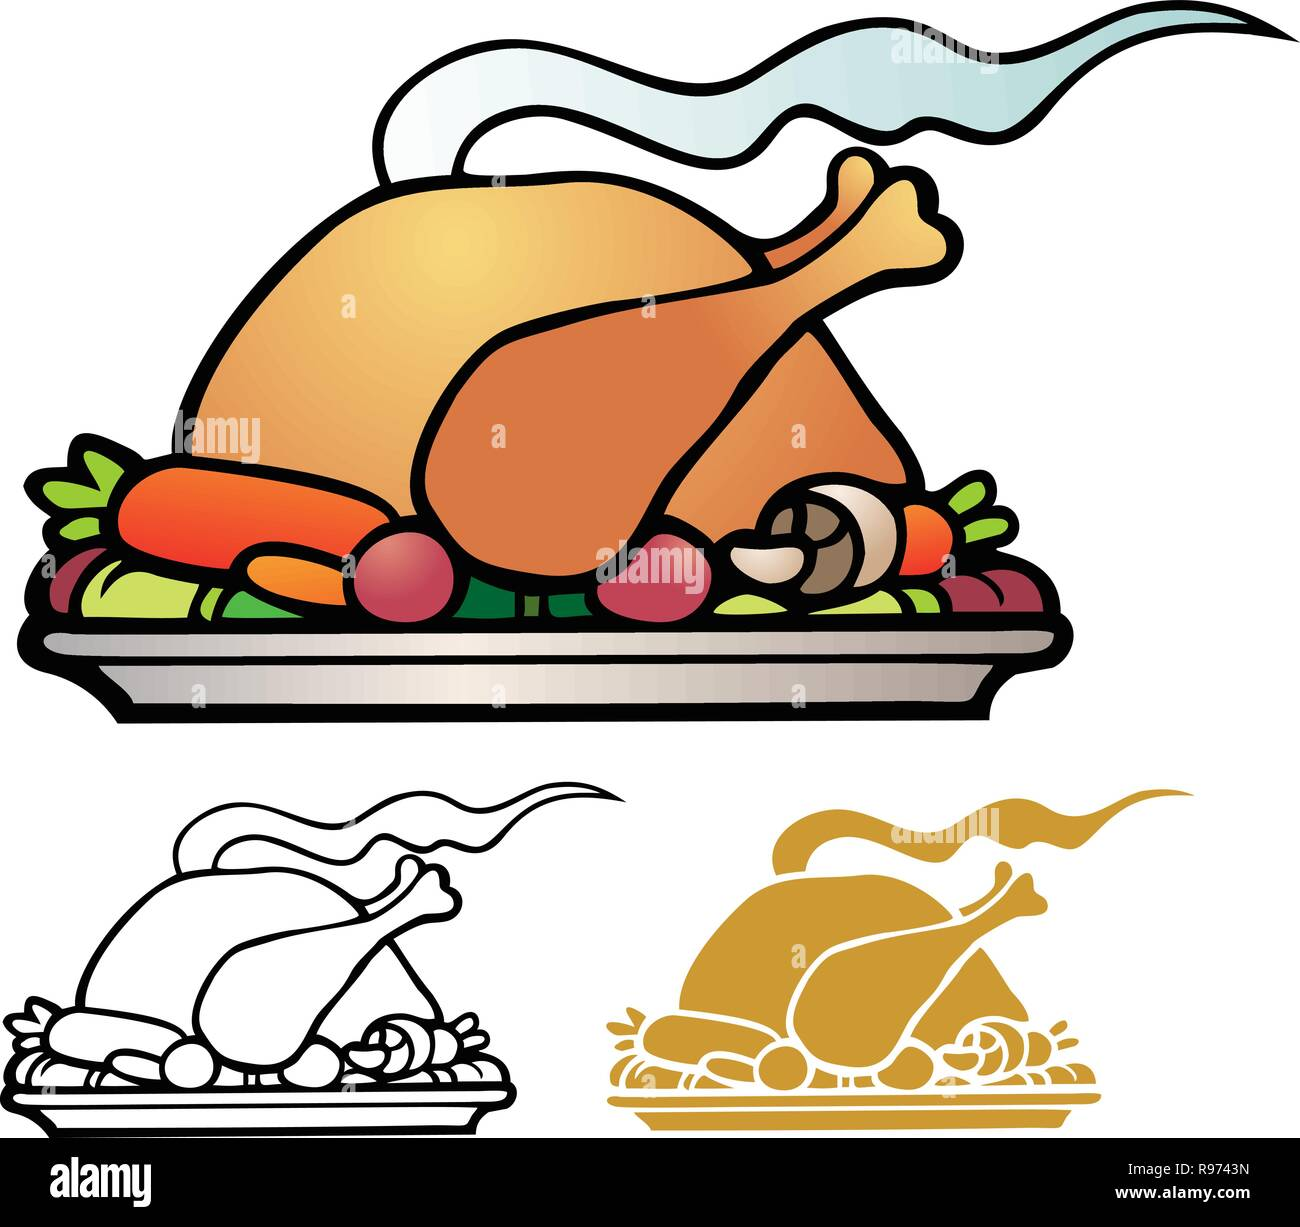 roasted turkey with lots of trimmings - Stock Vector